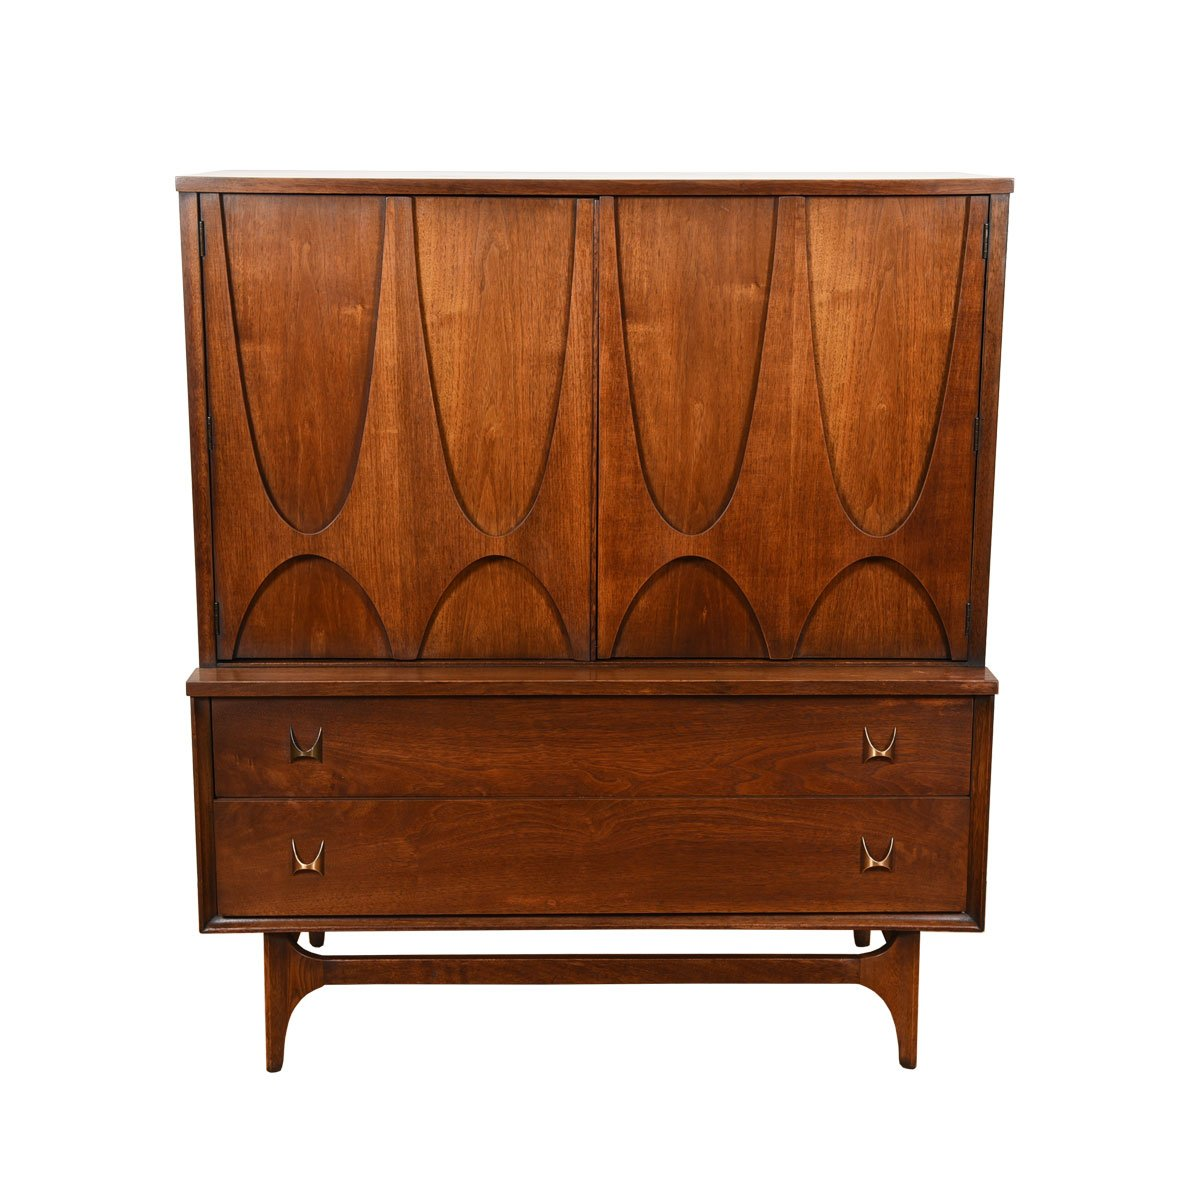 Broyhill Brasilia MCM Tall Walnut Door Chest / Dresser